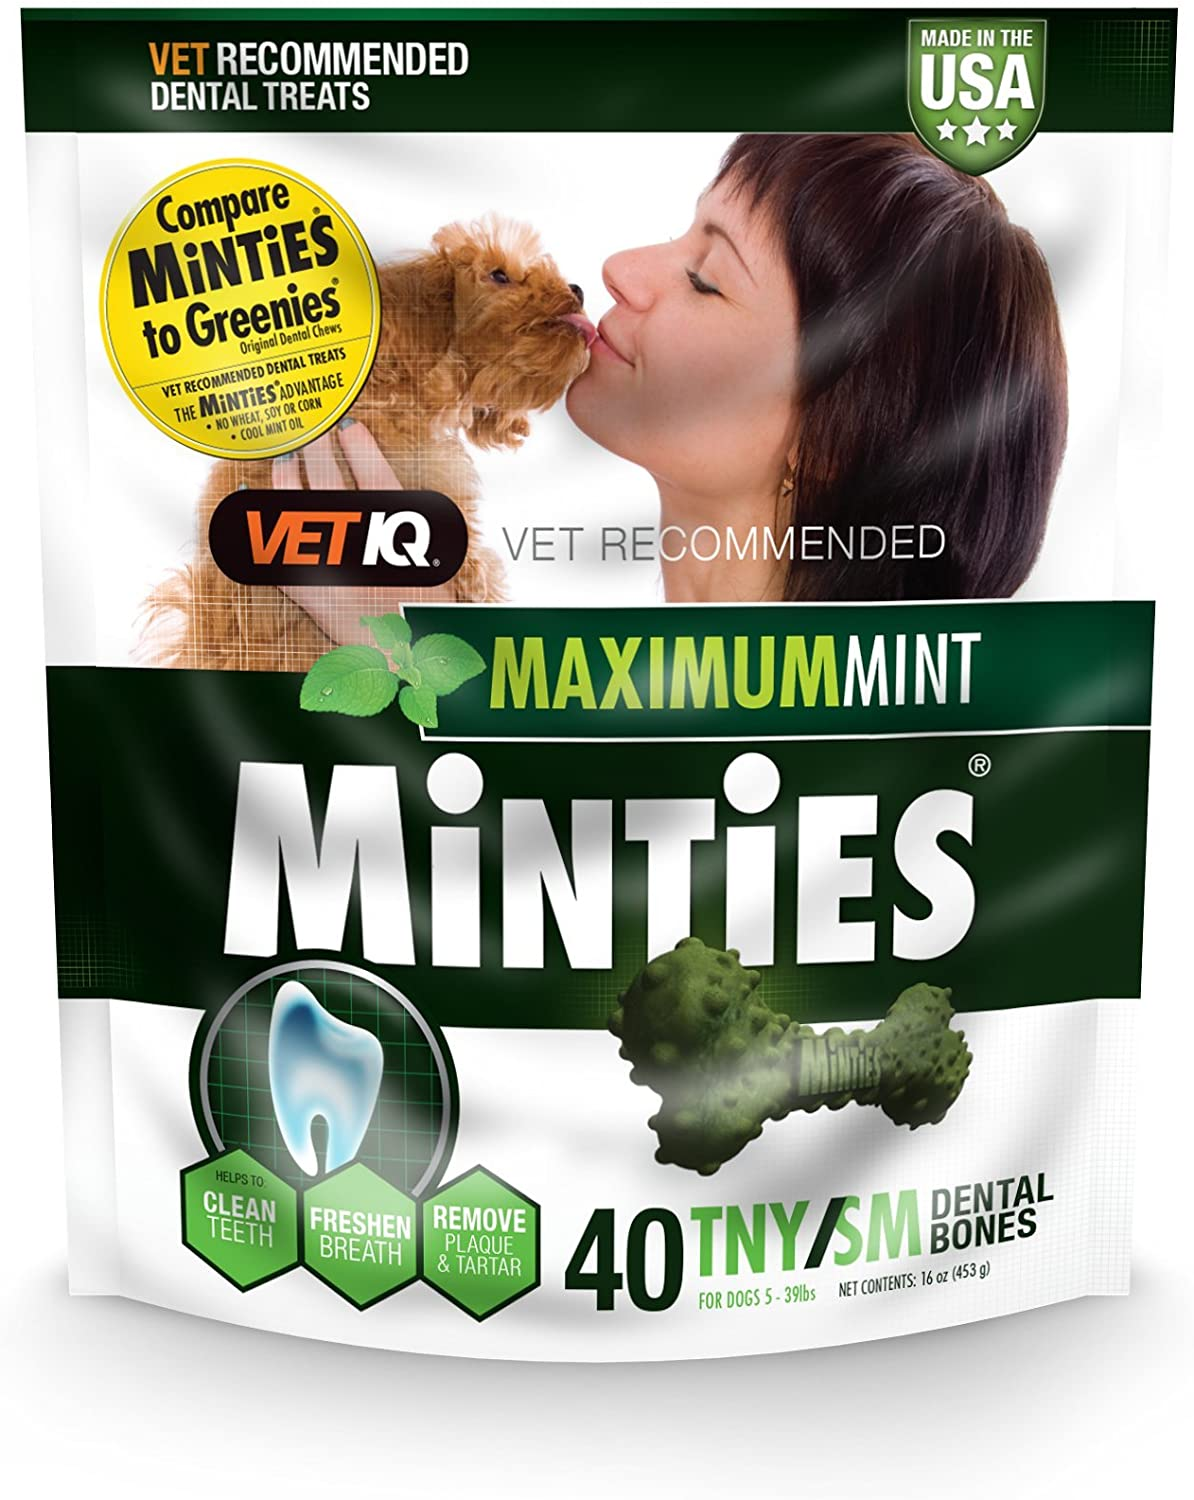 Dental Chews for Dogs, VetIQ Minties Dog Dental Bone Treats Perfect for Medium//Large Dogs Over 40 lbs